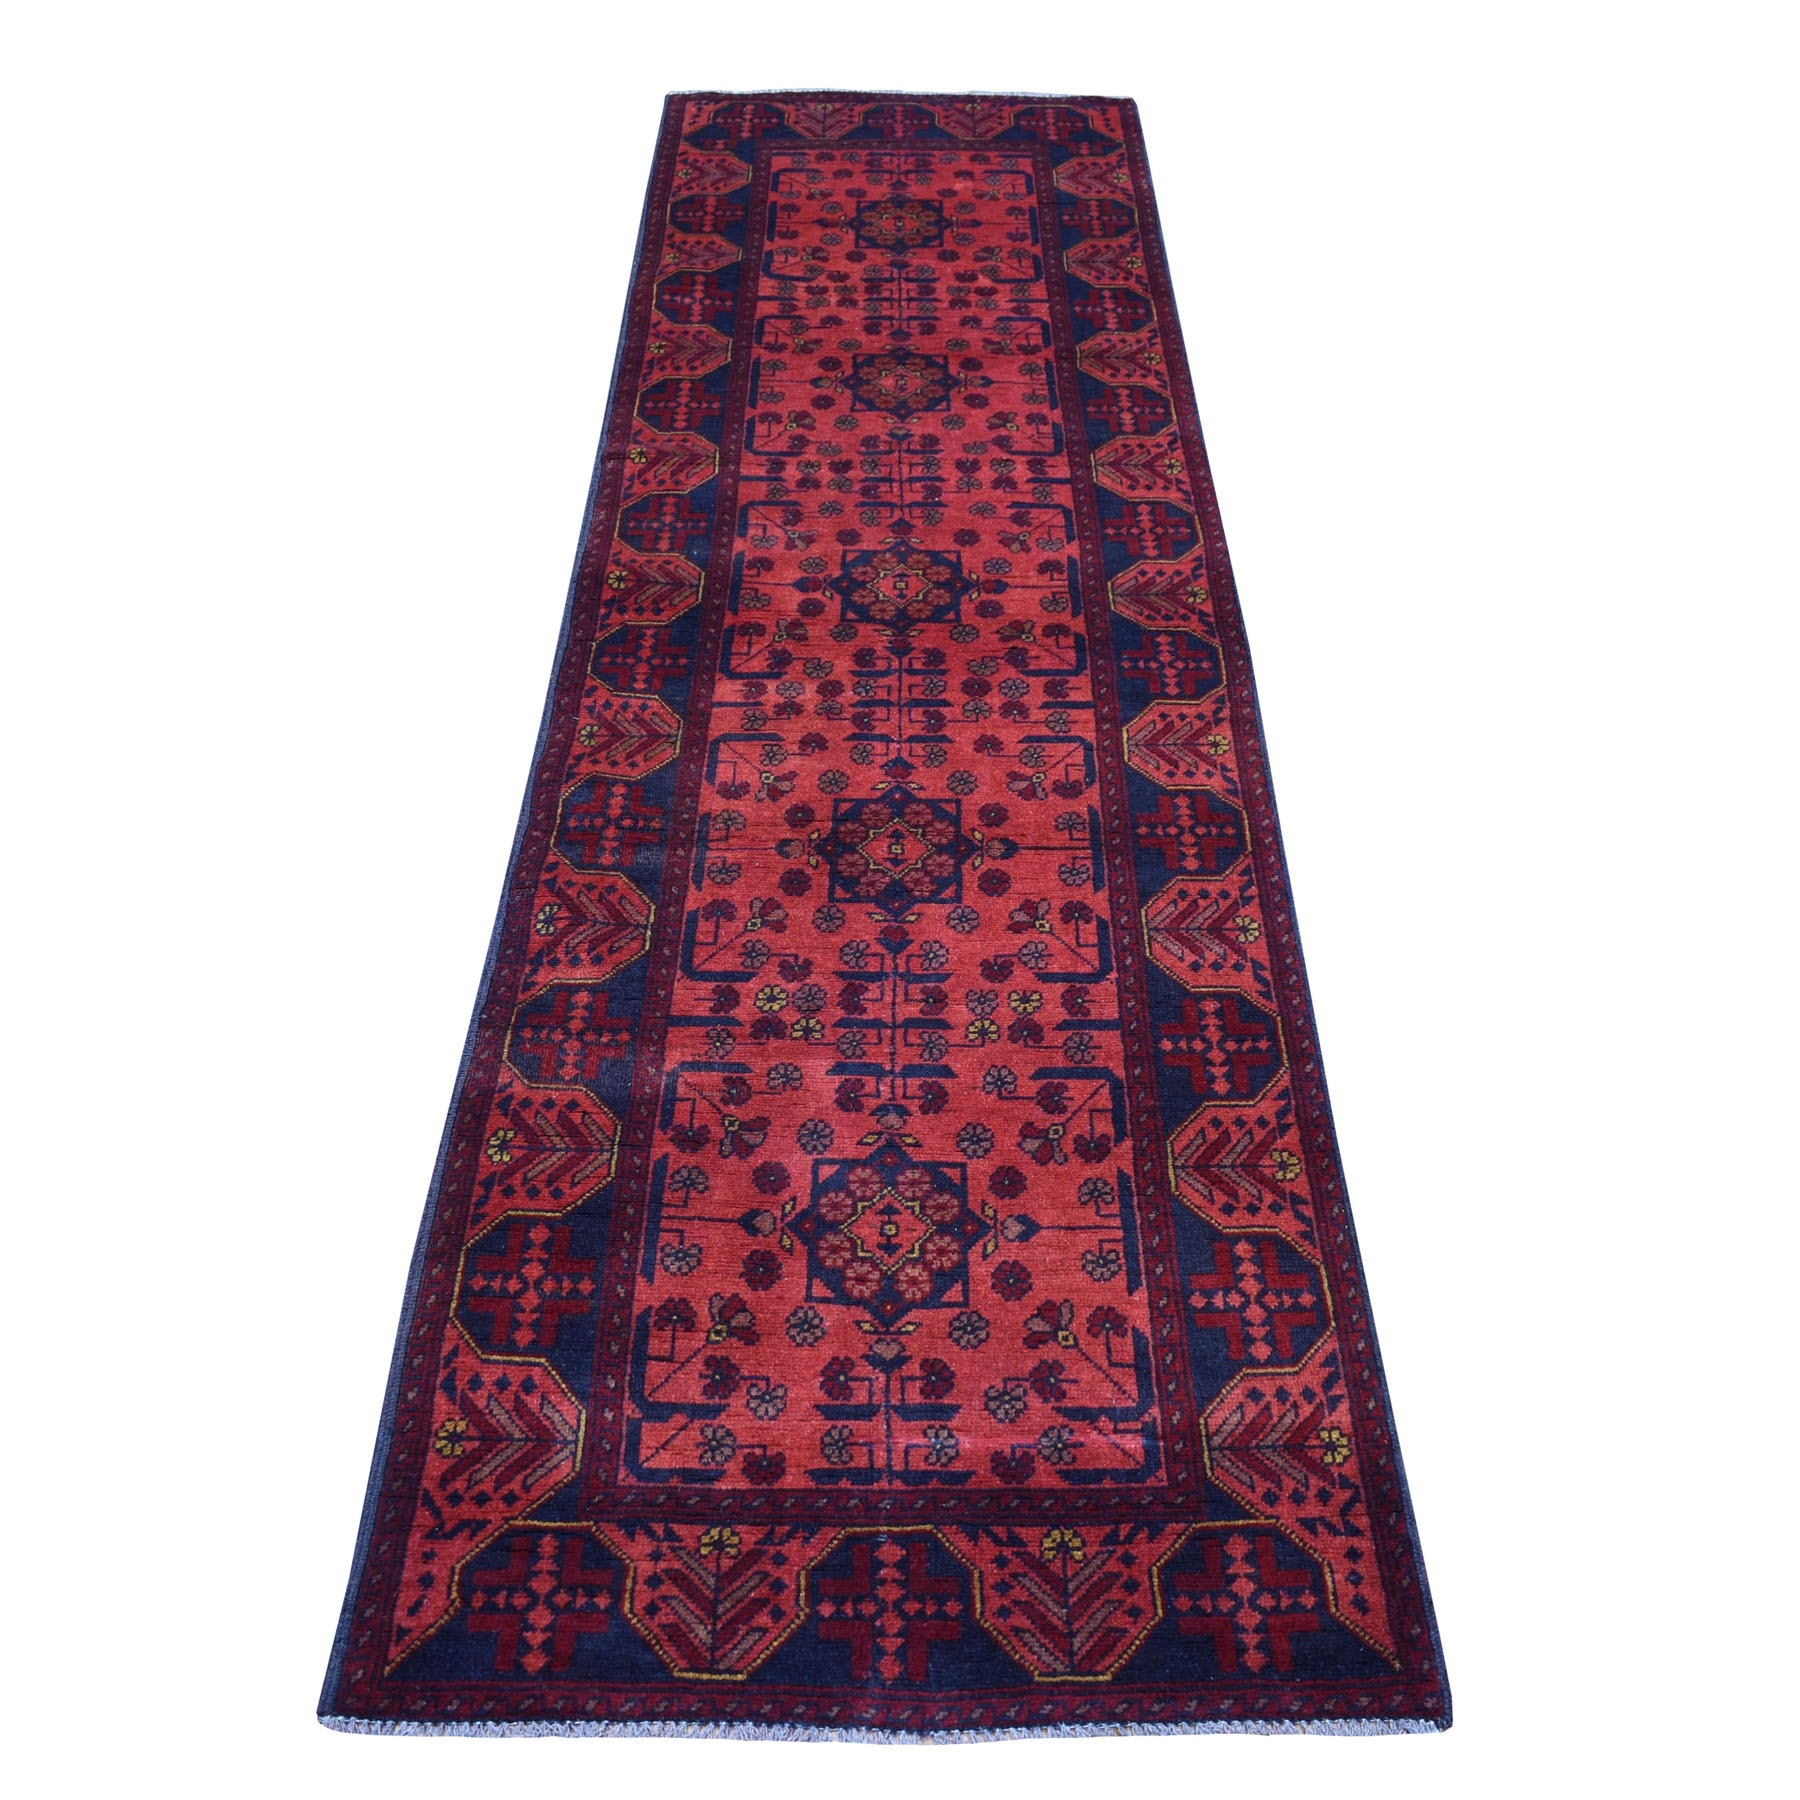 """2'8""""X9'3"""" Deep And Saturated Red Geometric Afghan Andkhoy Runner Pure Wool Hand Knotted Oriental Rug moaece0a"""